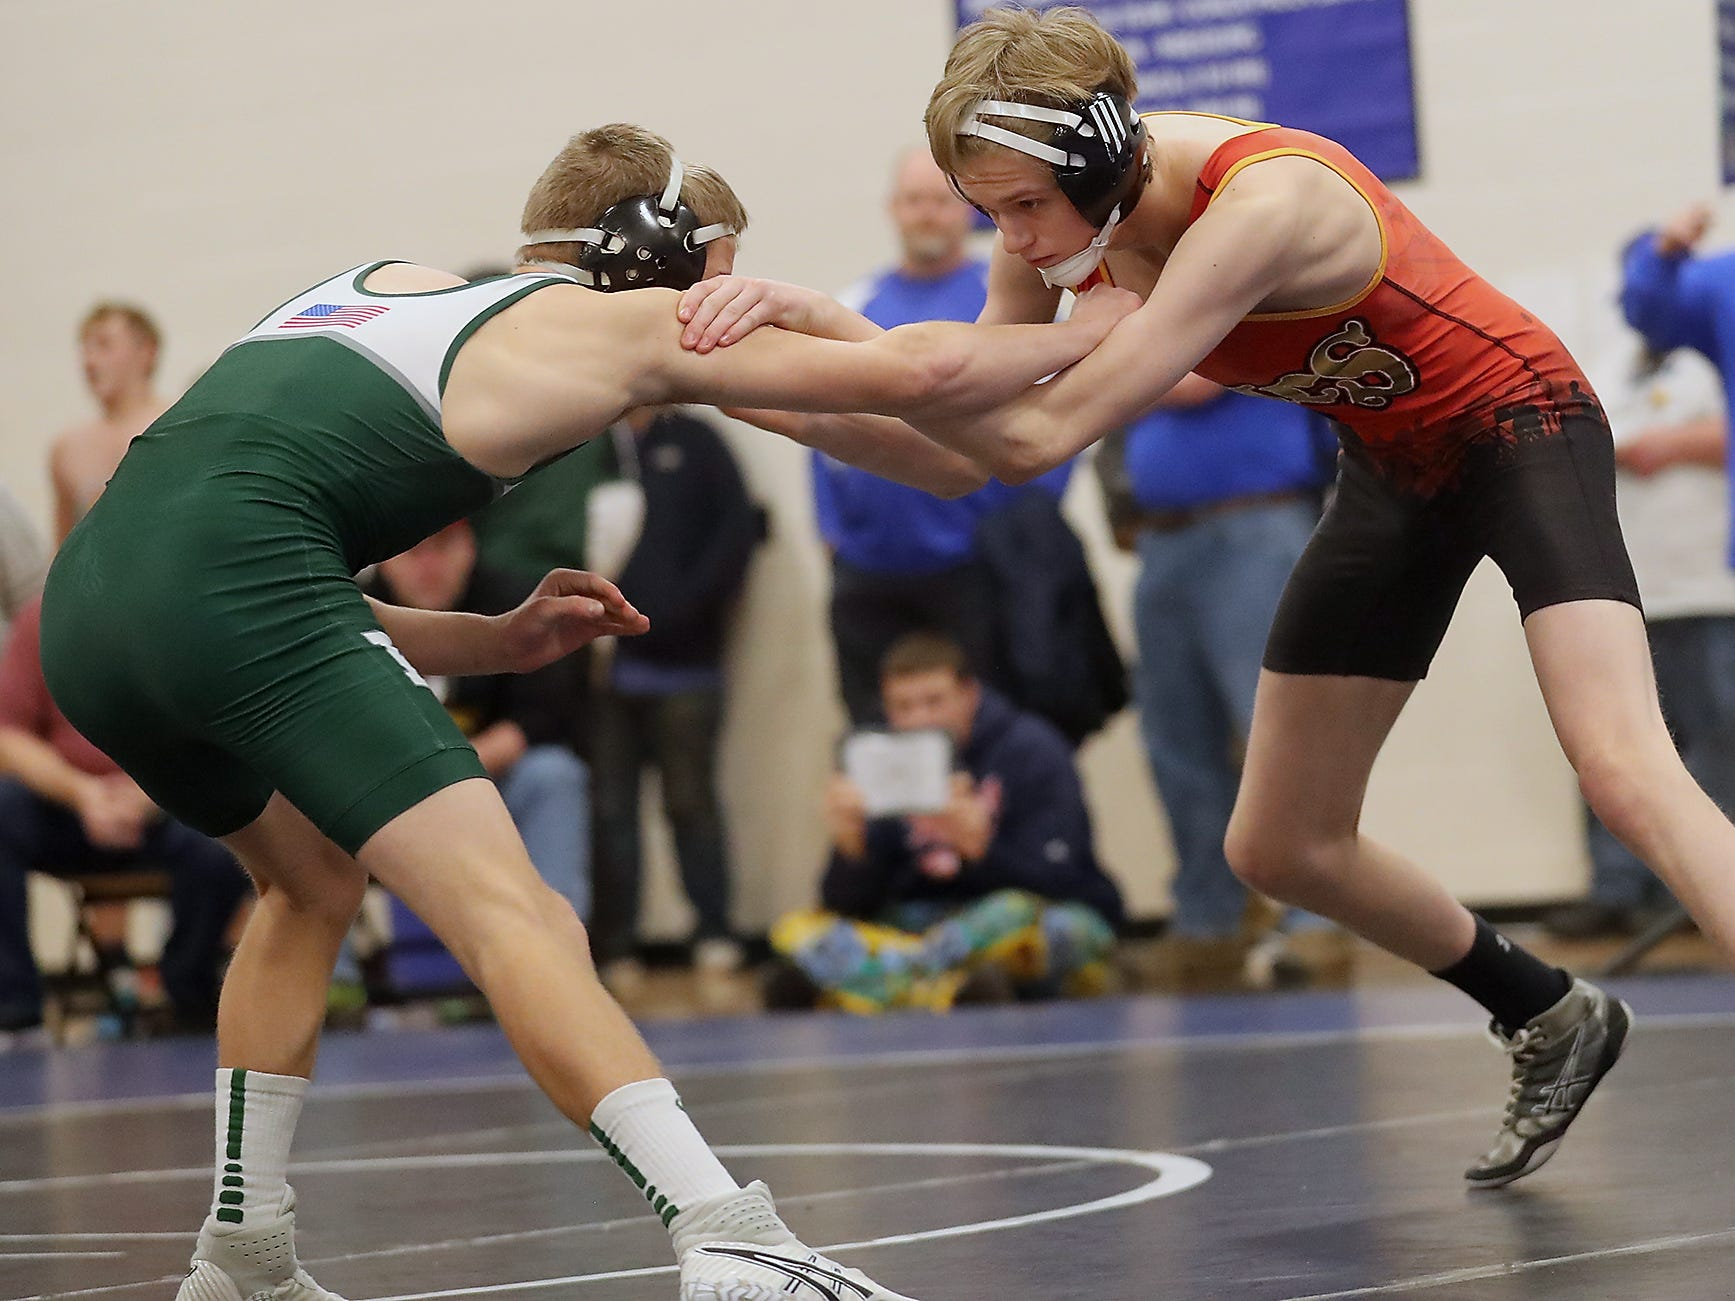 Kingston's Dalton Tellinghuisen (right) grapples with Port Angeles's Daniel Busclen for the final of the 126-pound weight class at the North Mason Classic in Belfair on Saturday, December 22, 2018.